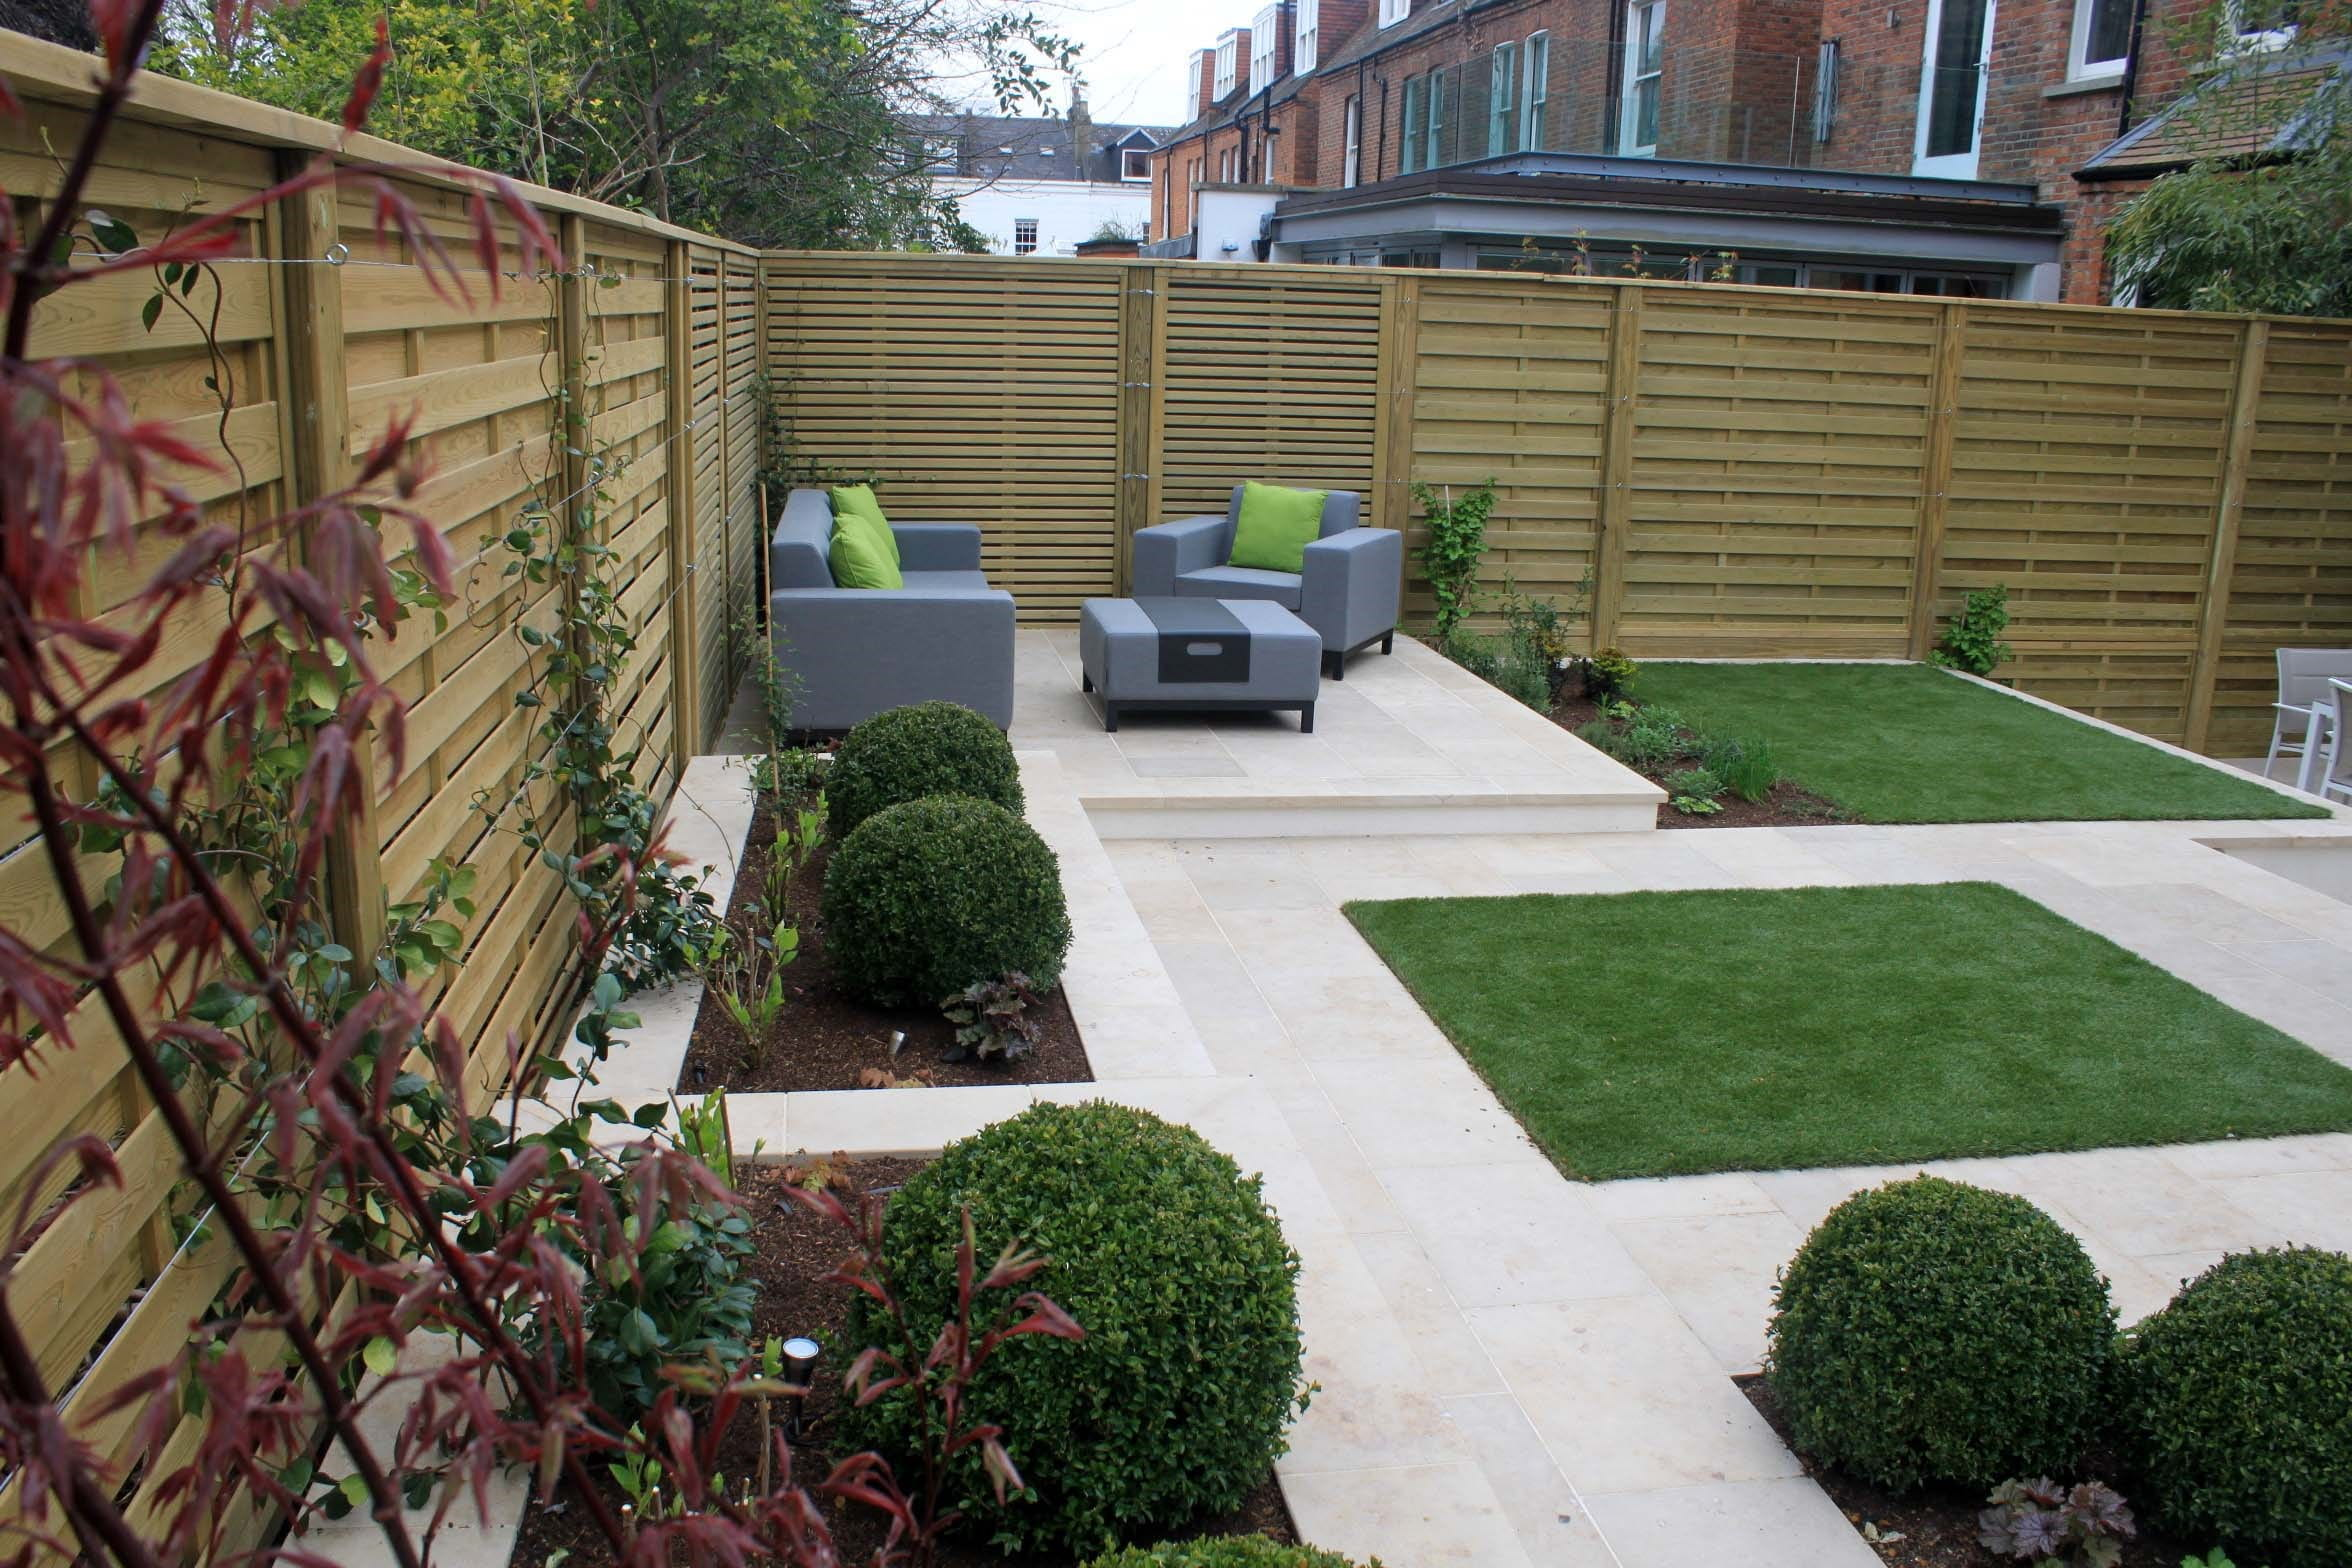 Stylish modern garden featuring contemporary fencing